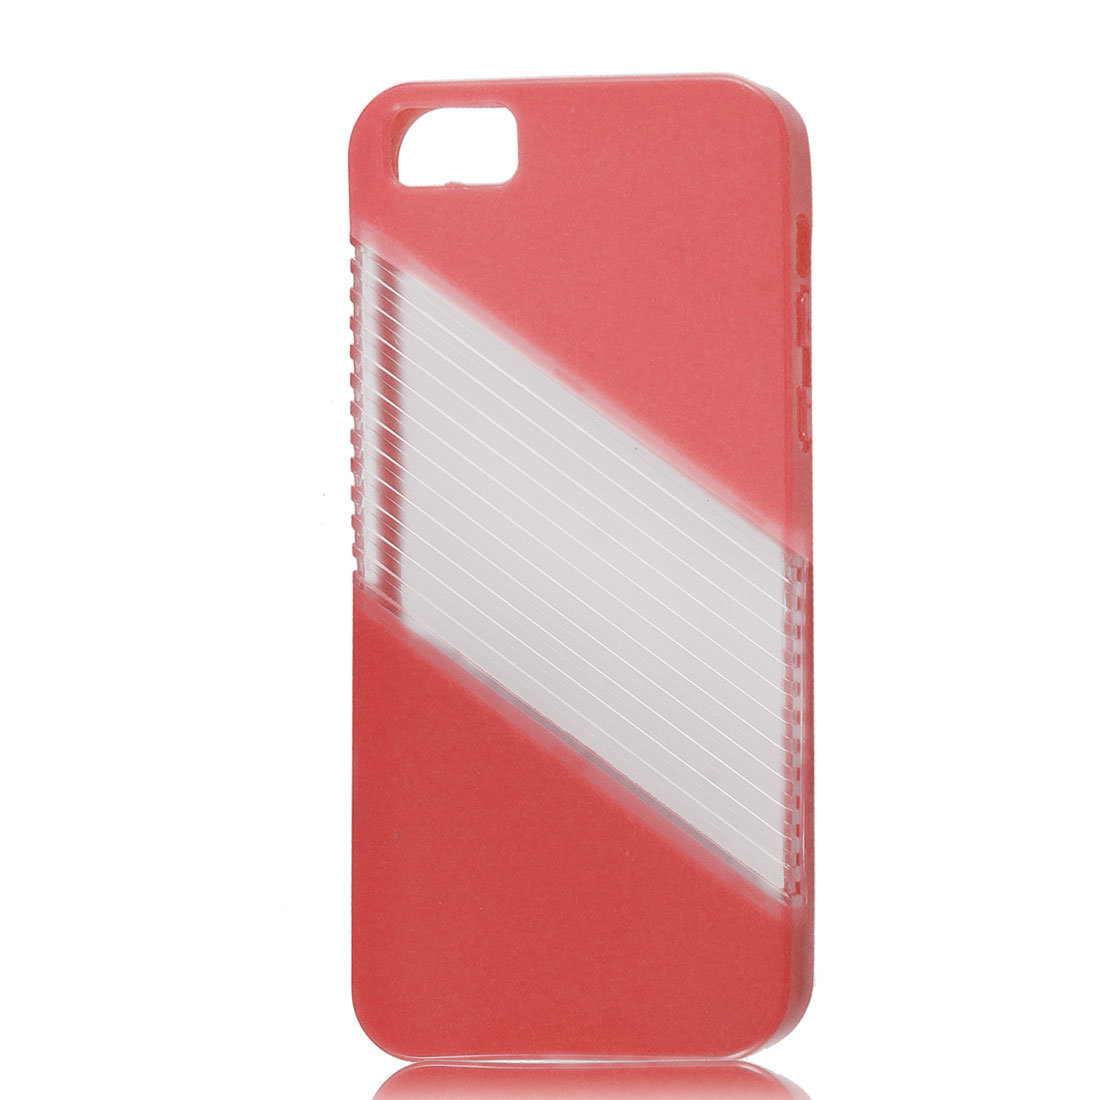 Red Soft Case Skin Cover Shell for Apple iPhone 5 5G